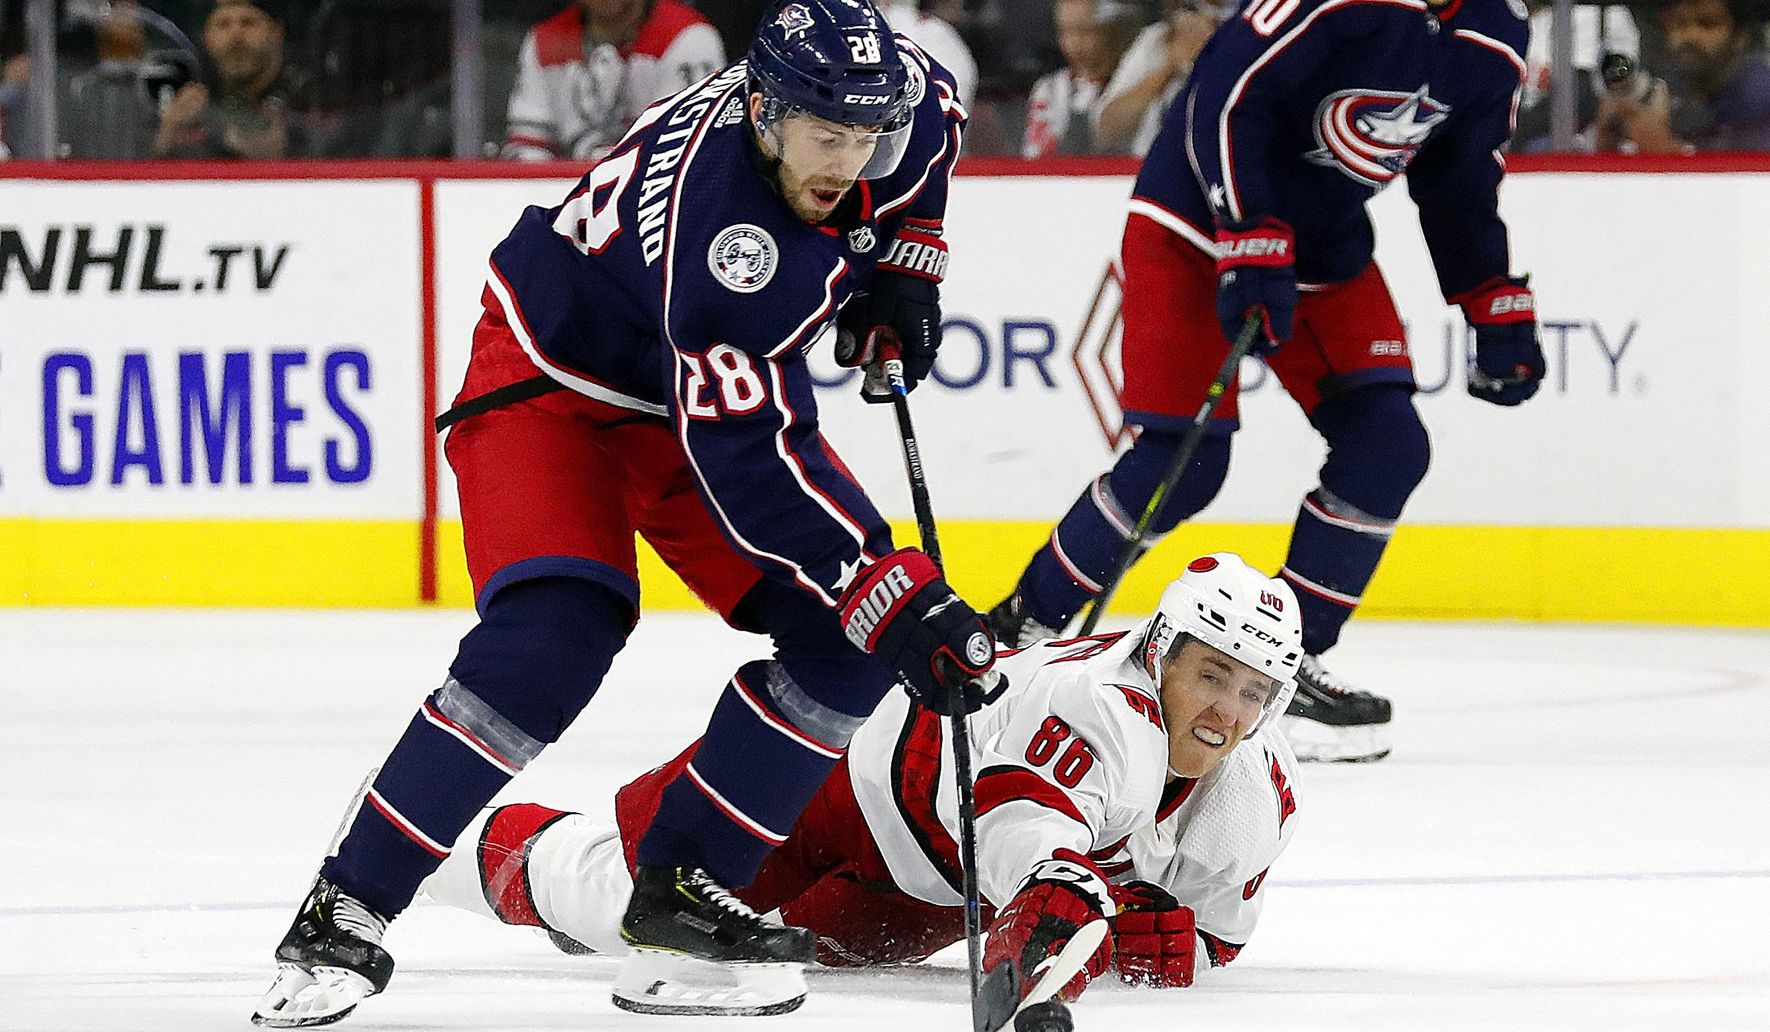 Blue_jackets_hurricanes_hockey_95210_c0-107-2578-1610_s1770x1032